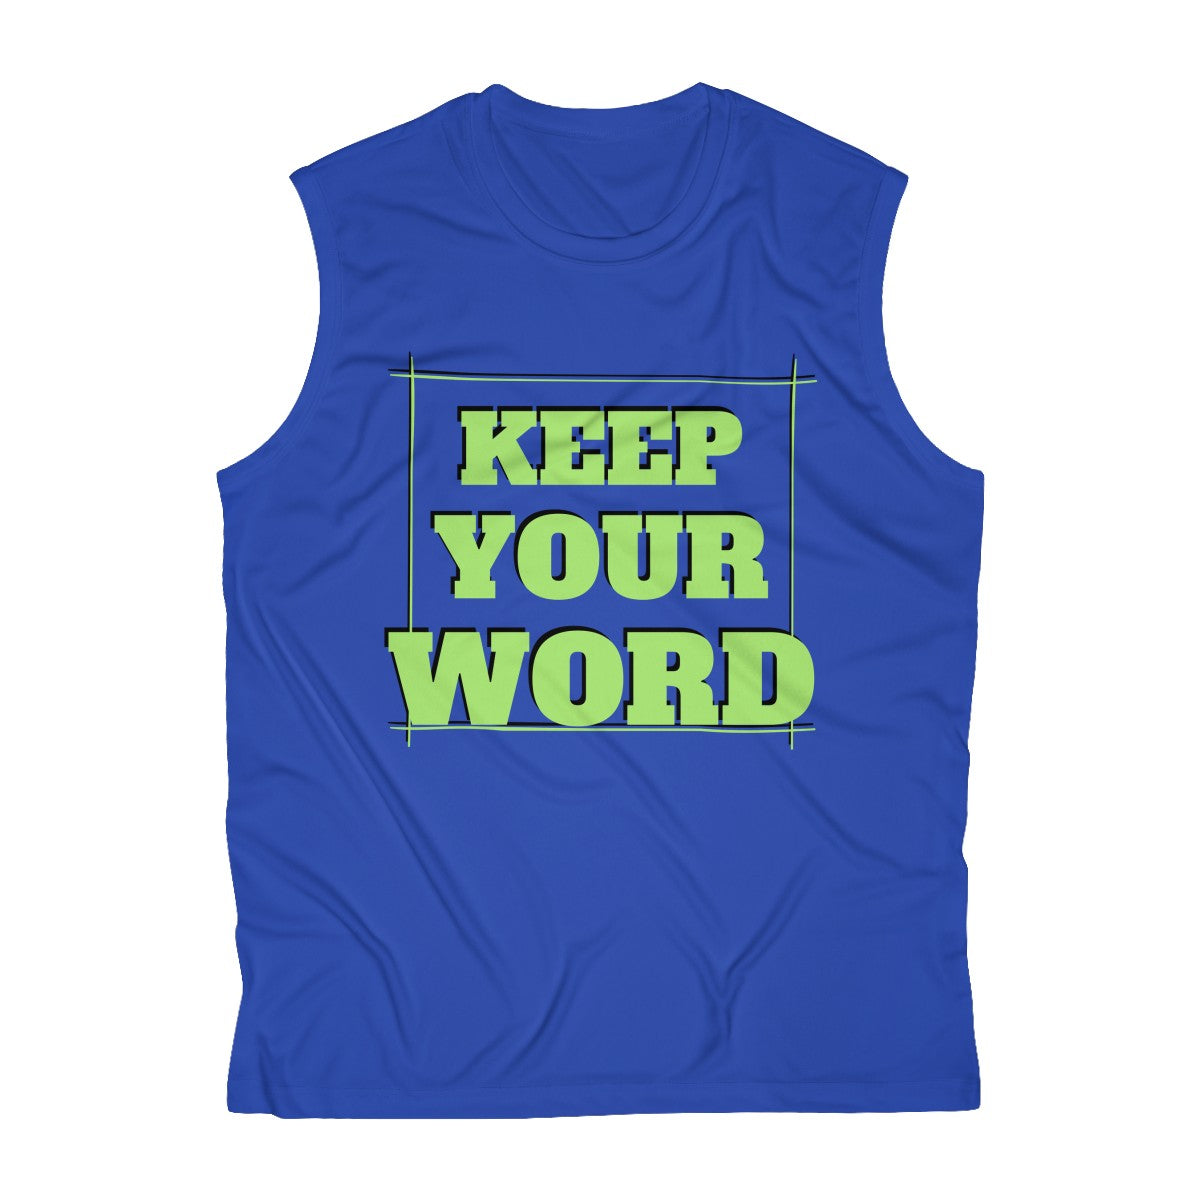 Keep your word - Men's Sleeveless Performance Tee by Dray-A